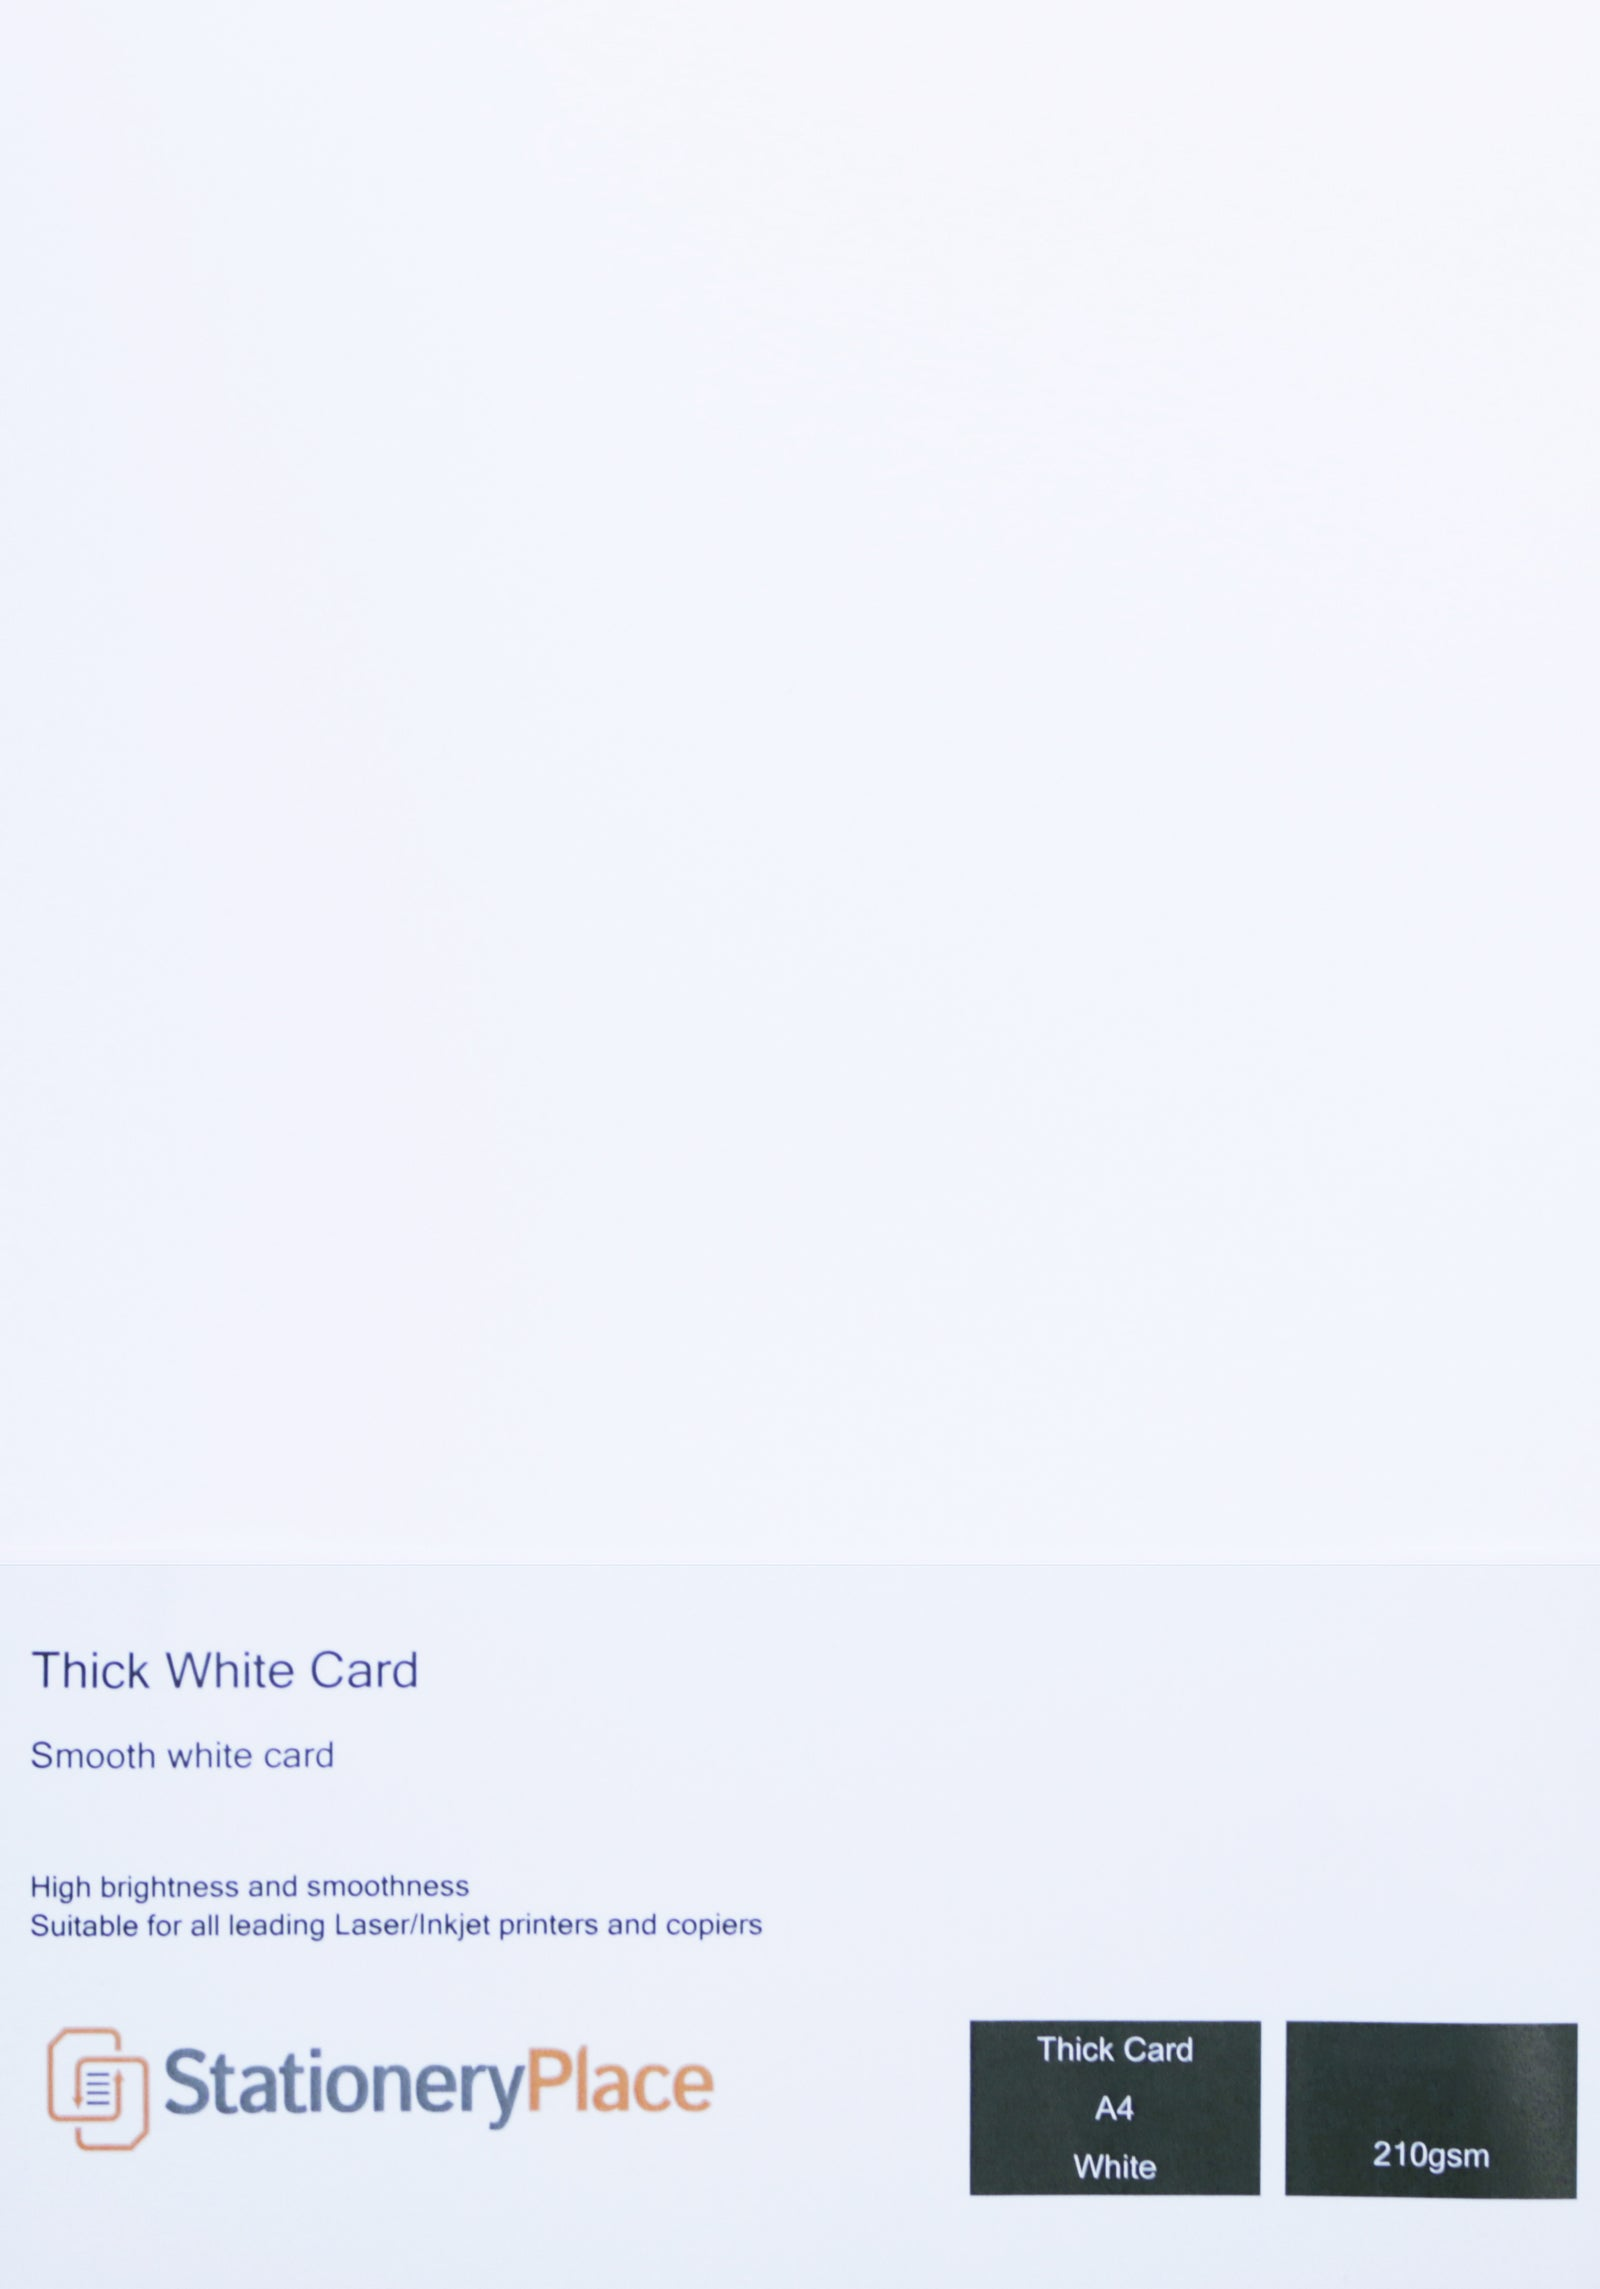 Thick White Card Stationery Place Premium Quality 210 GSM A4 A5 1 to 250 sheets